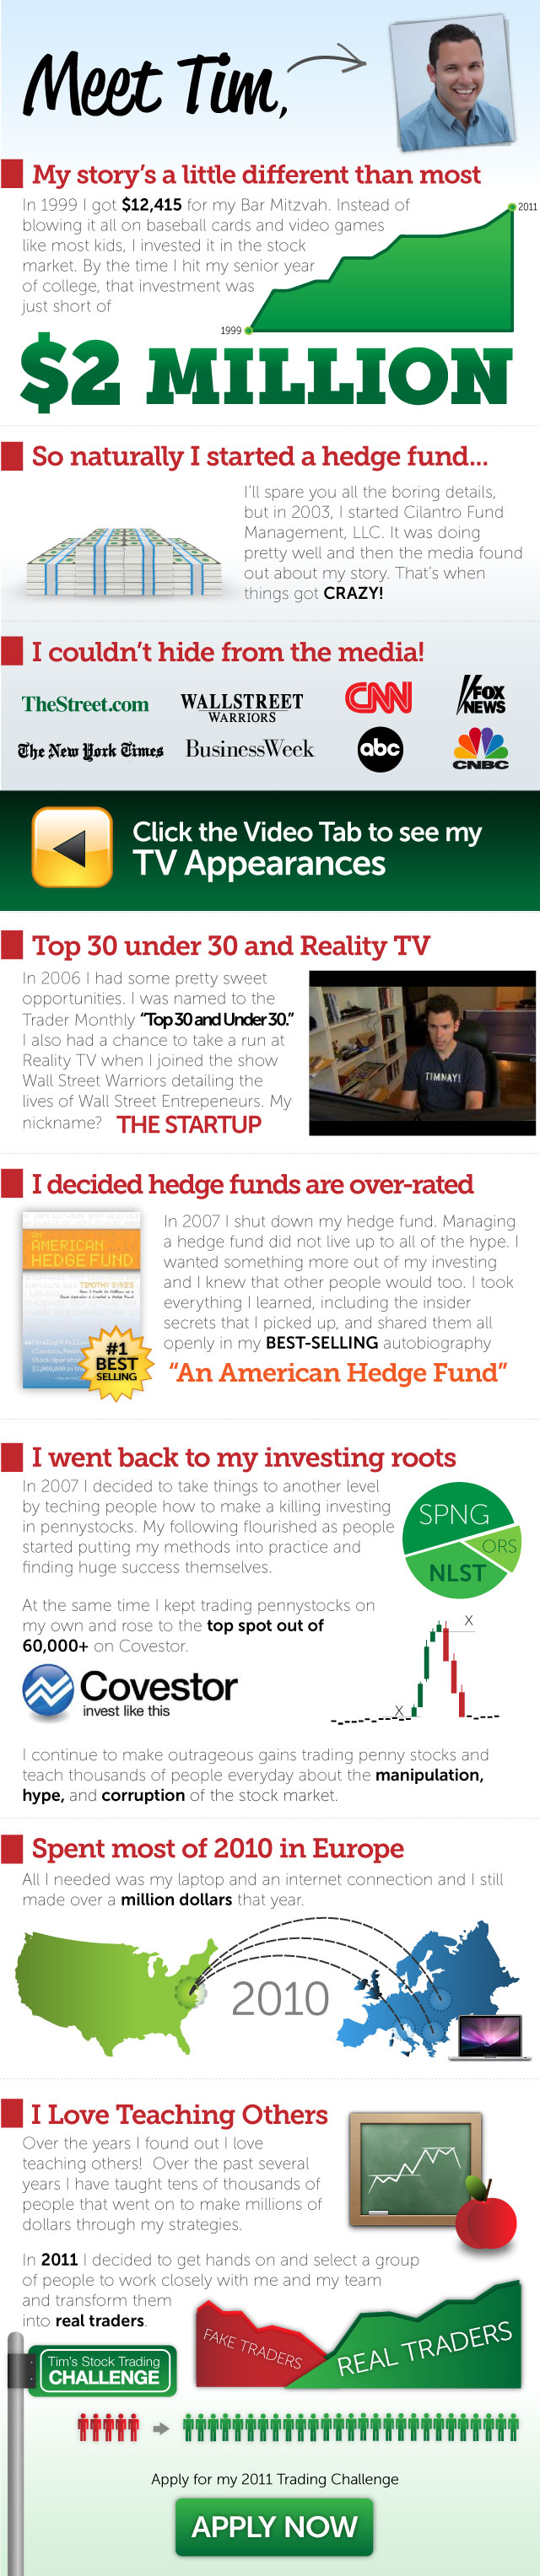 timothy-sykes-life-as-an-infographic_52118aa4ced29